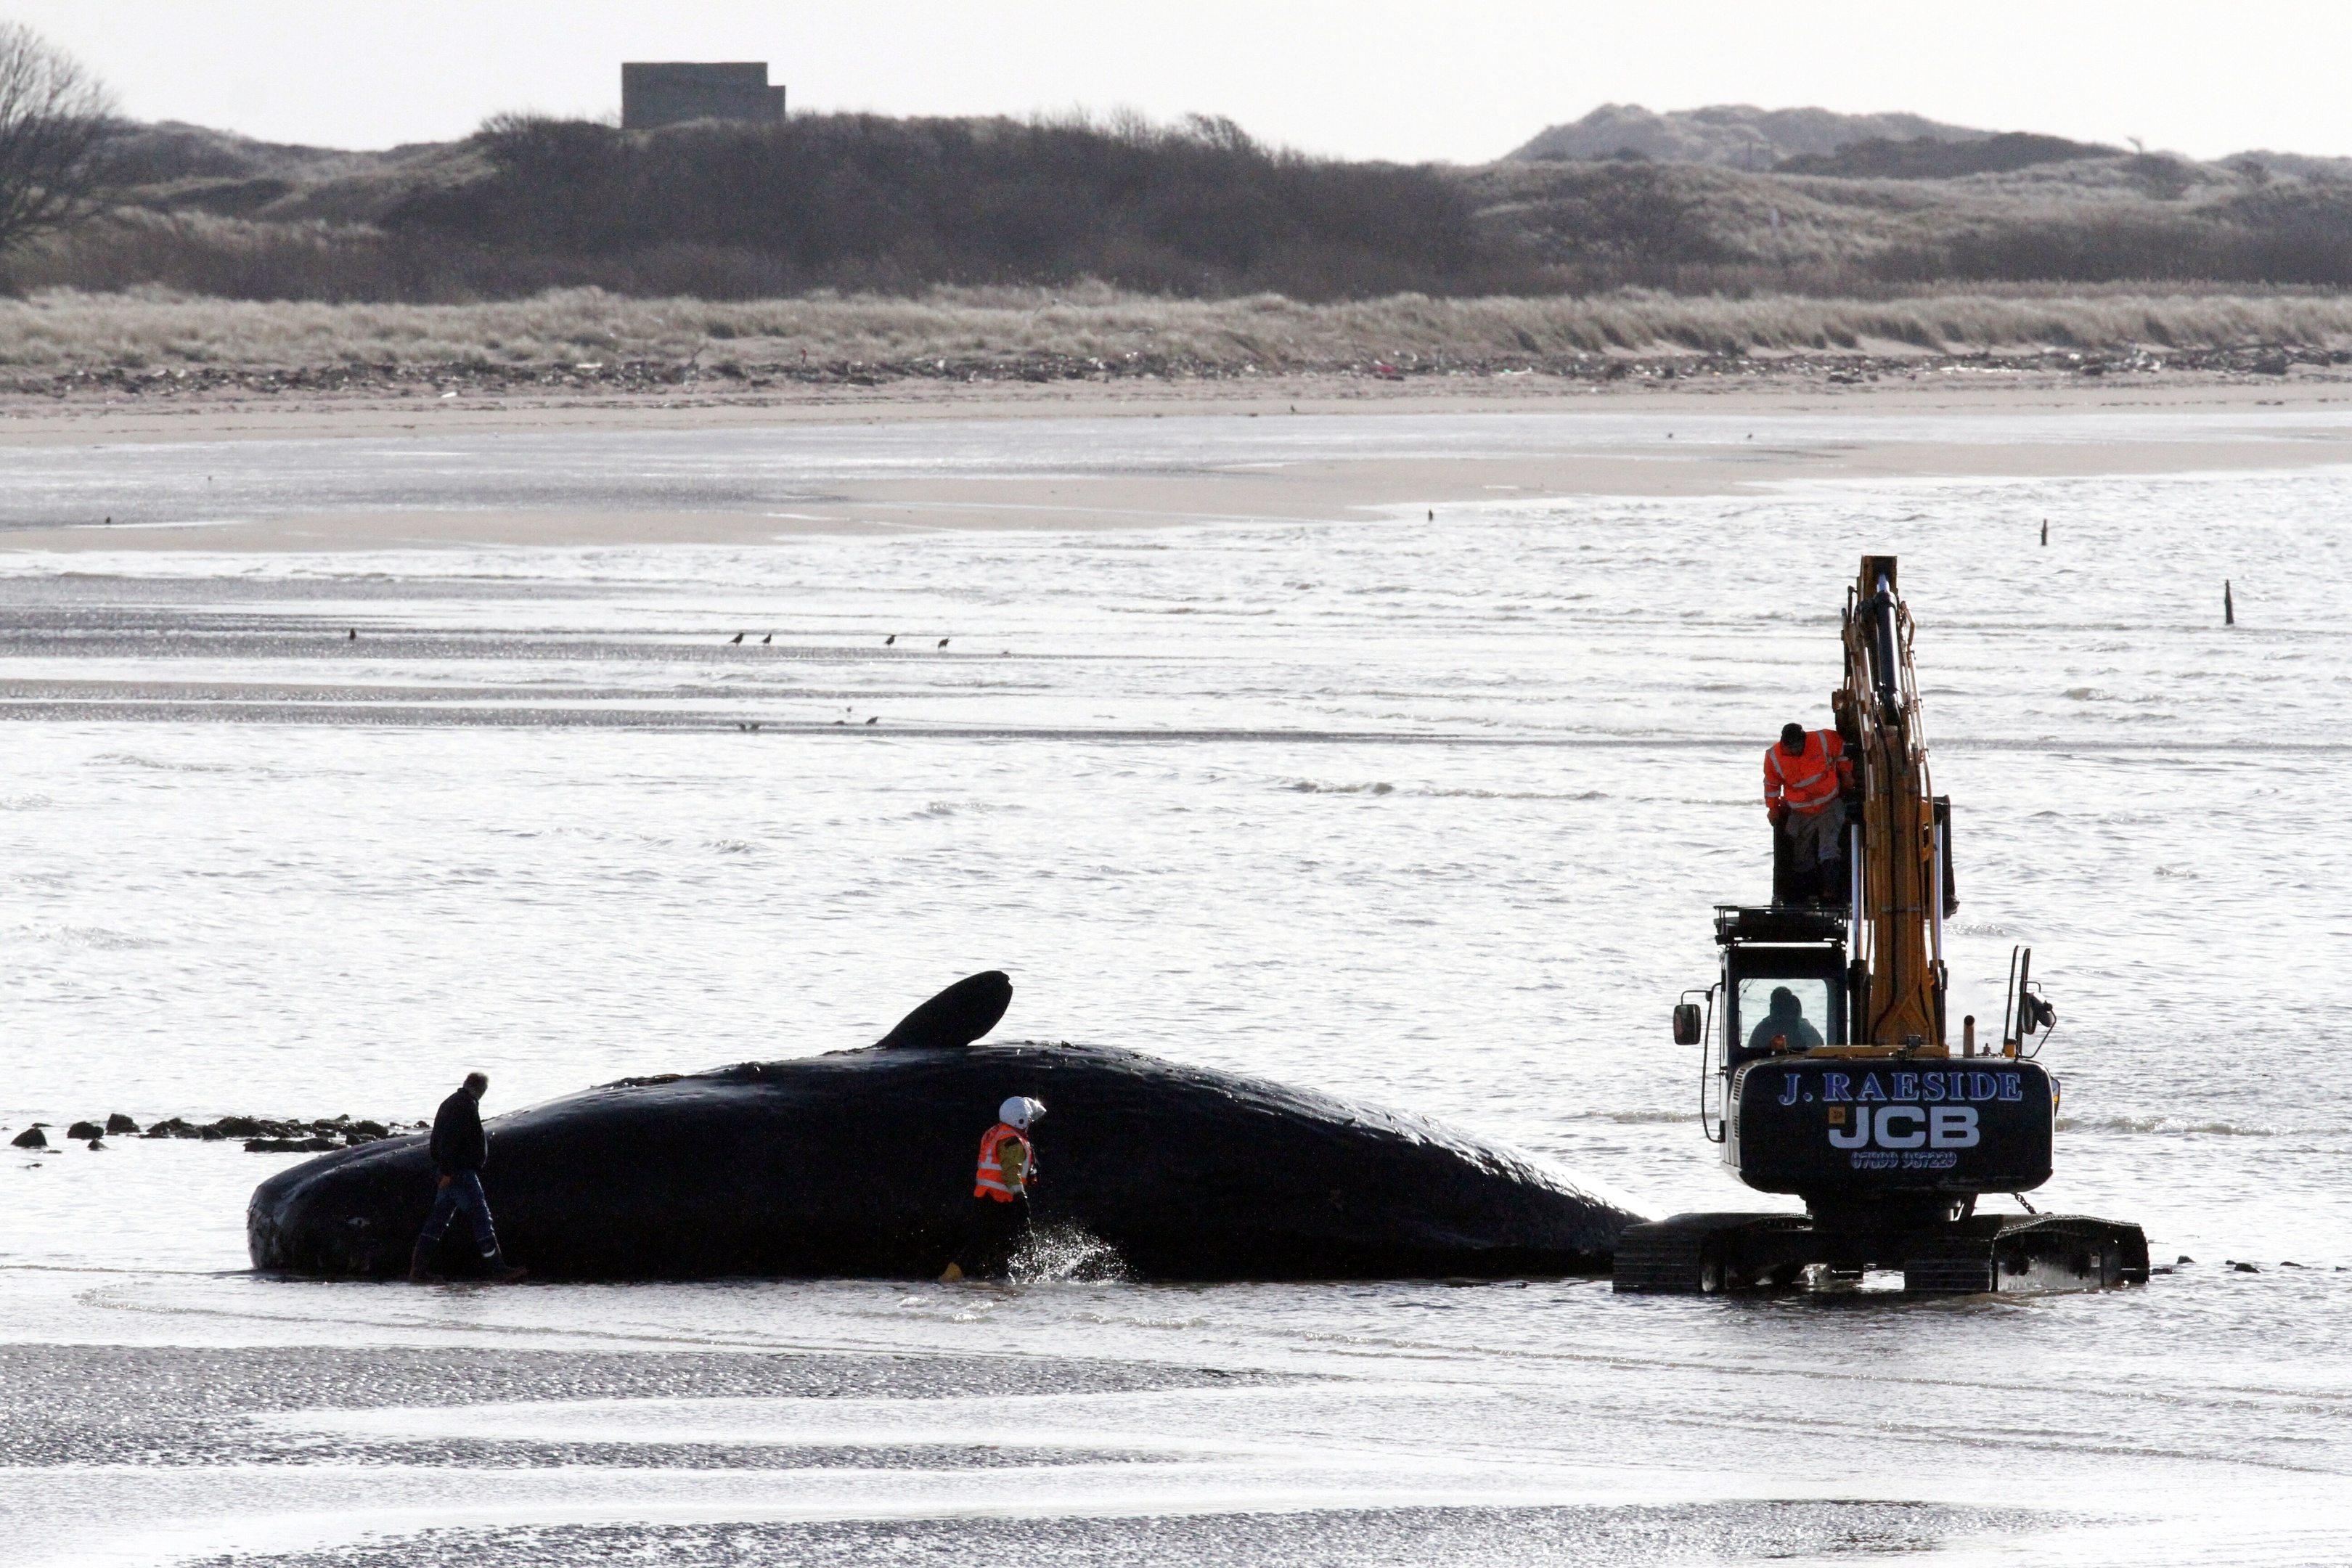 A digger works away beside the carcass of the dead sperm whale